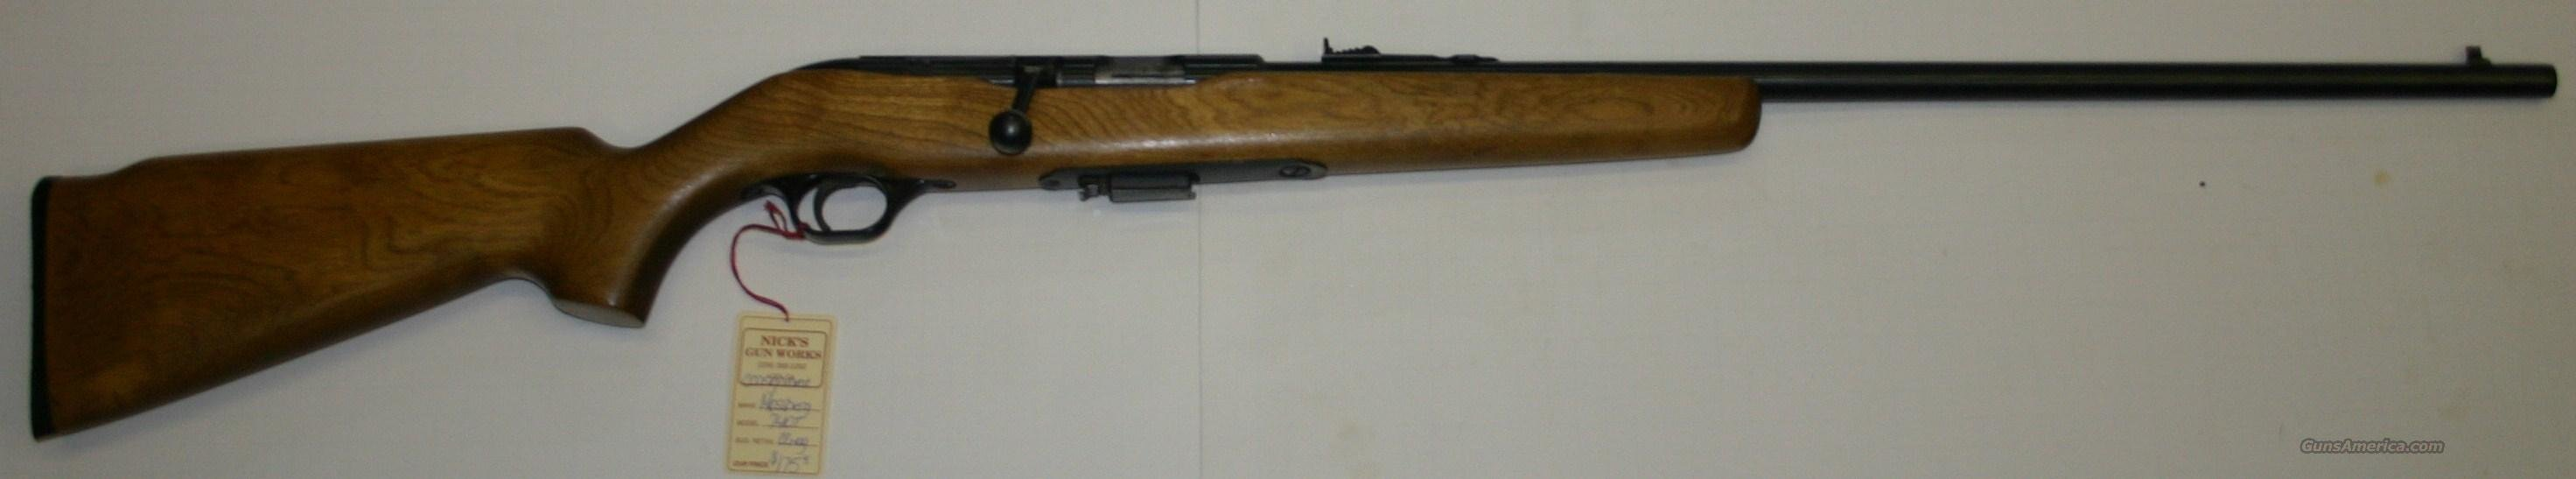 Mossberg 740T .22Mag  Guns > Rifles > Mossberg Rifles > Other Bolt Action